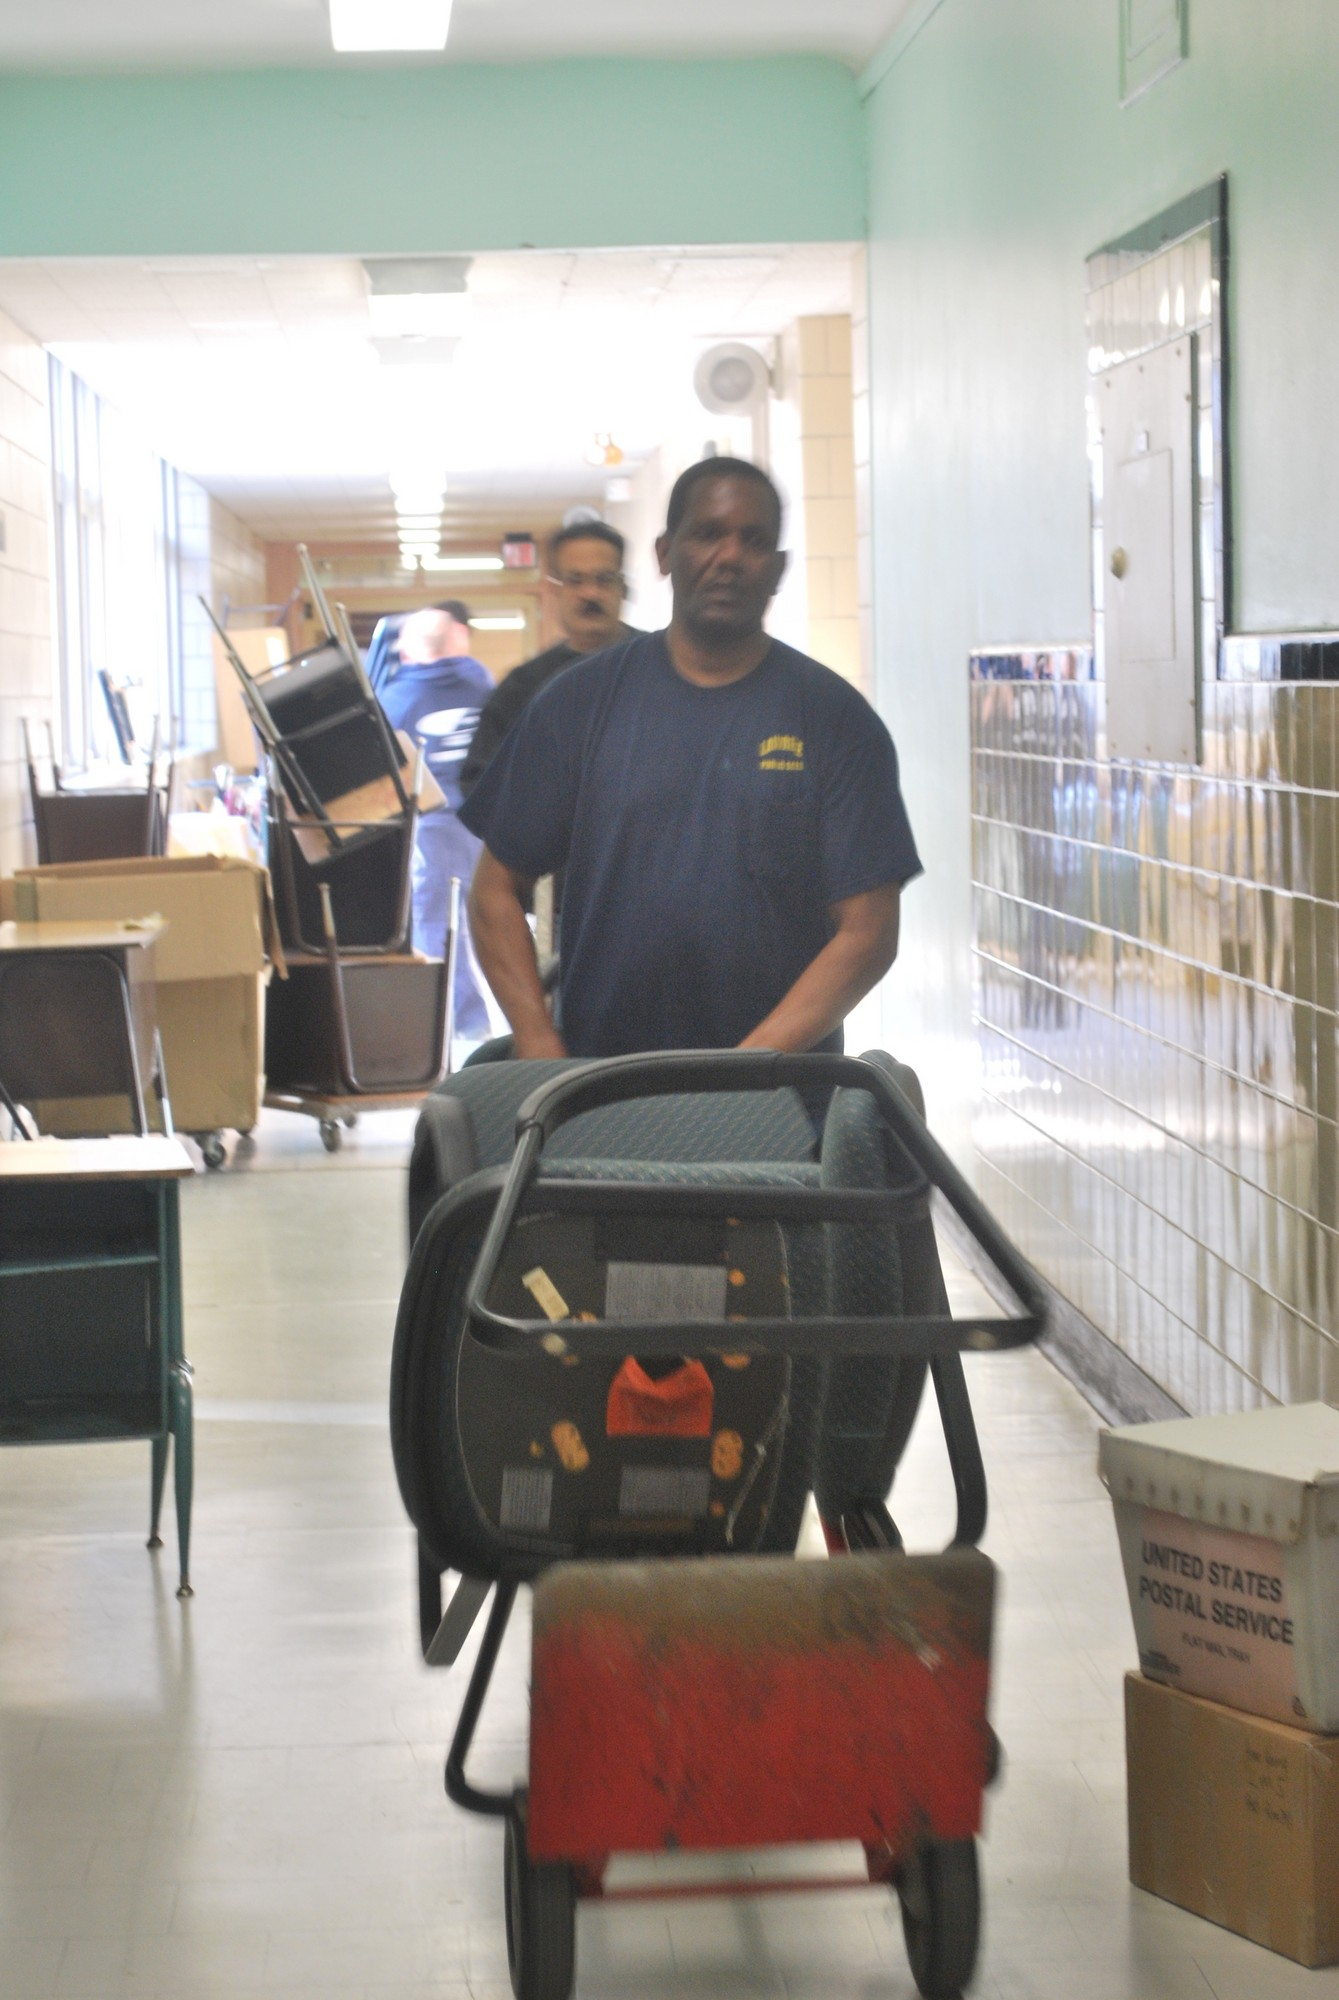 The Lawrence School District was expected to return to normal operations on Wednesday, when the high school was to reopen. District worker Prince Singh moved chairs at the middle school last week.